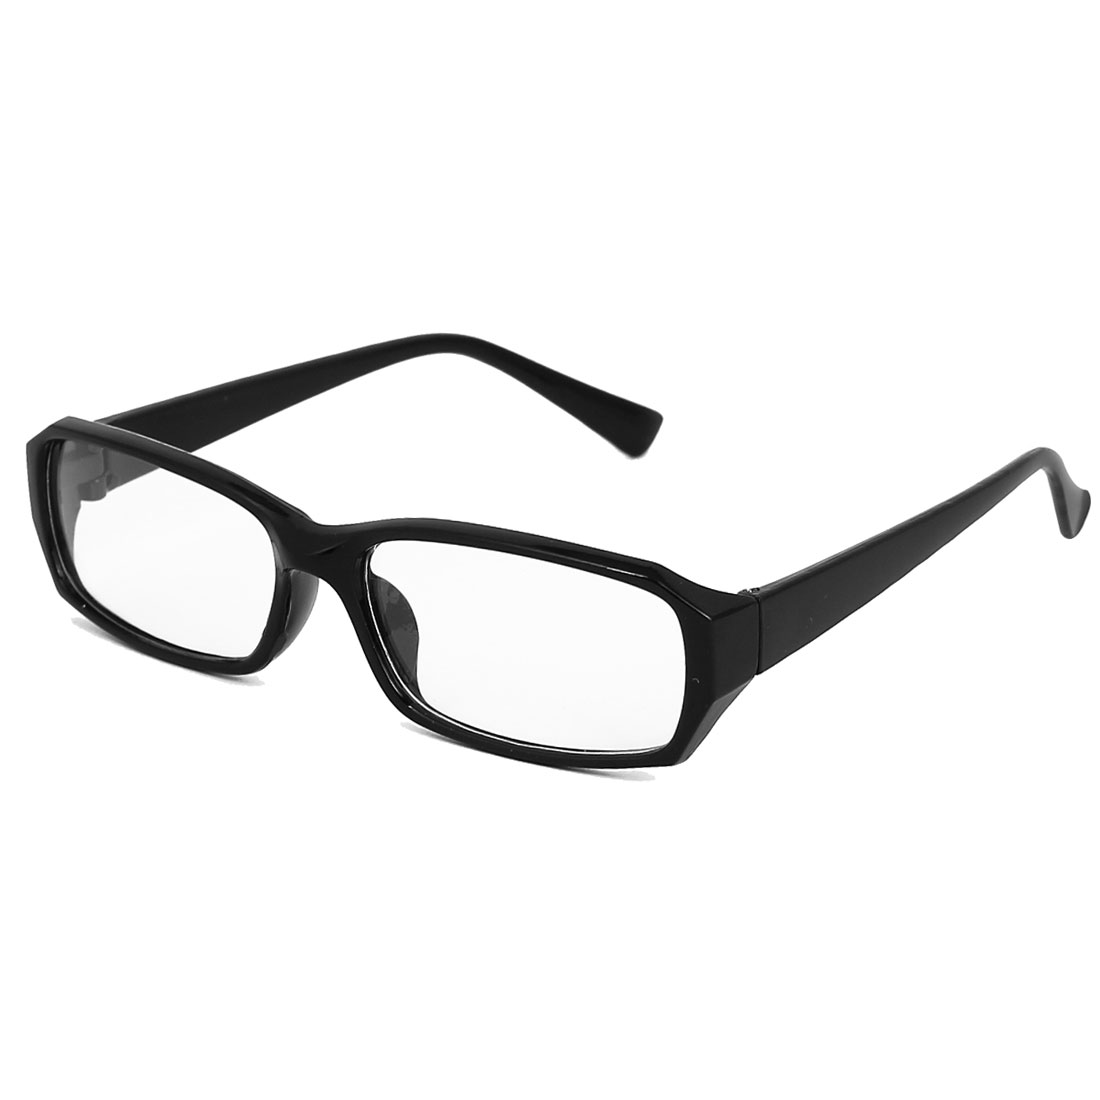 Plastic Horned Rim Clear Lens Plano Eye Glasses for Men And Women